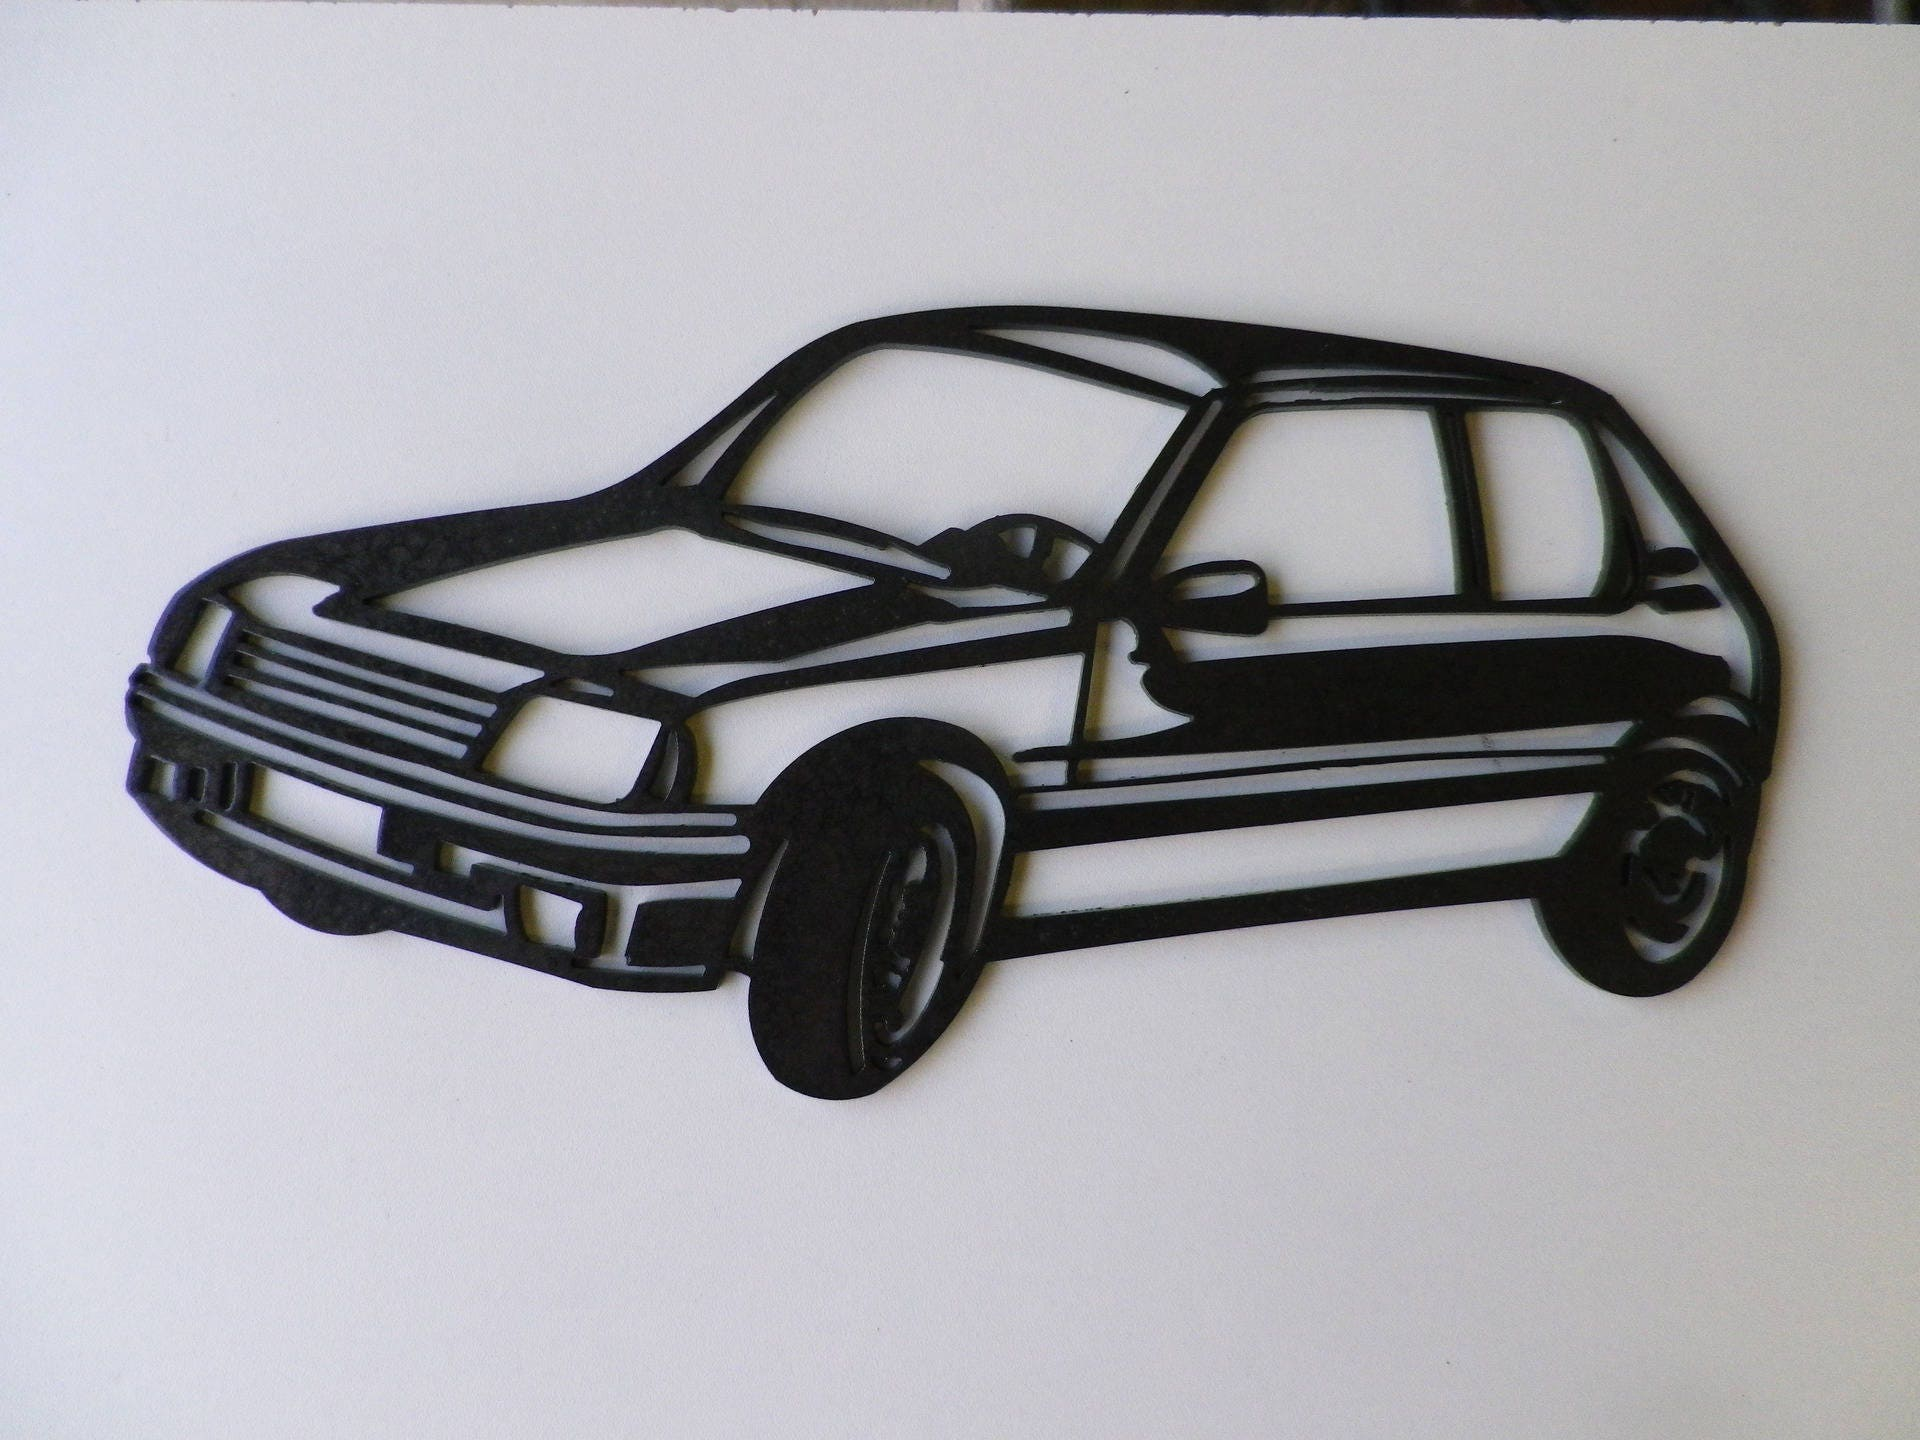 plaque enseigne peugeot 205 gti en fer peint. Black Bedroom Furniture Sets. Home Design Ideas